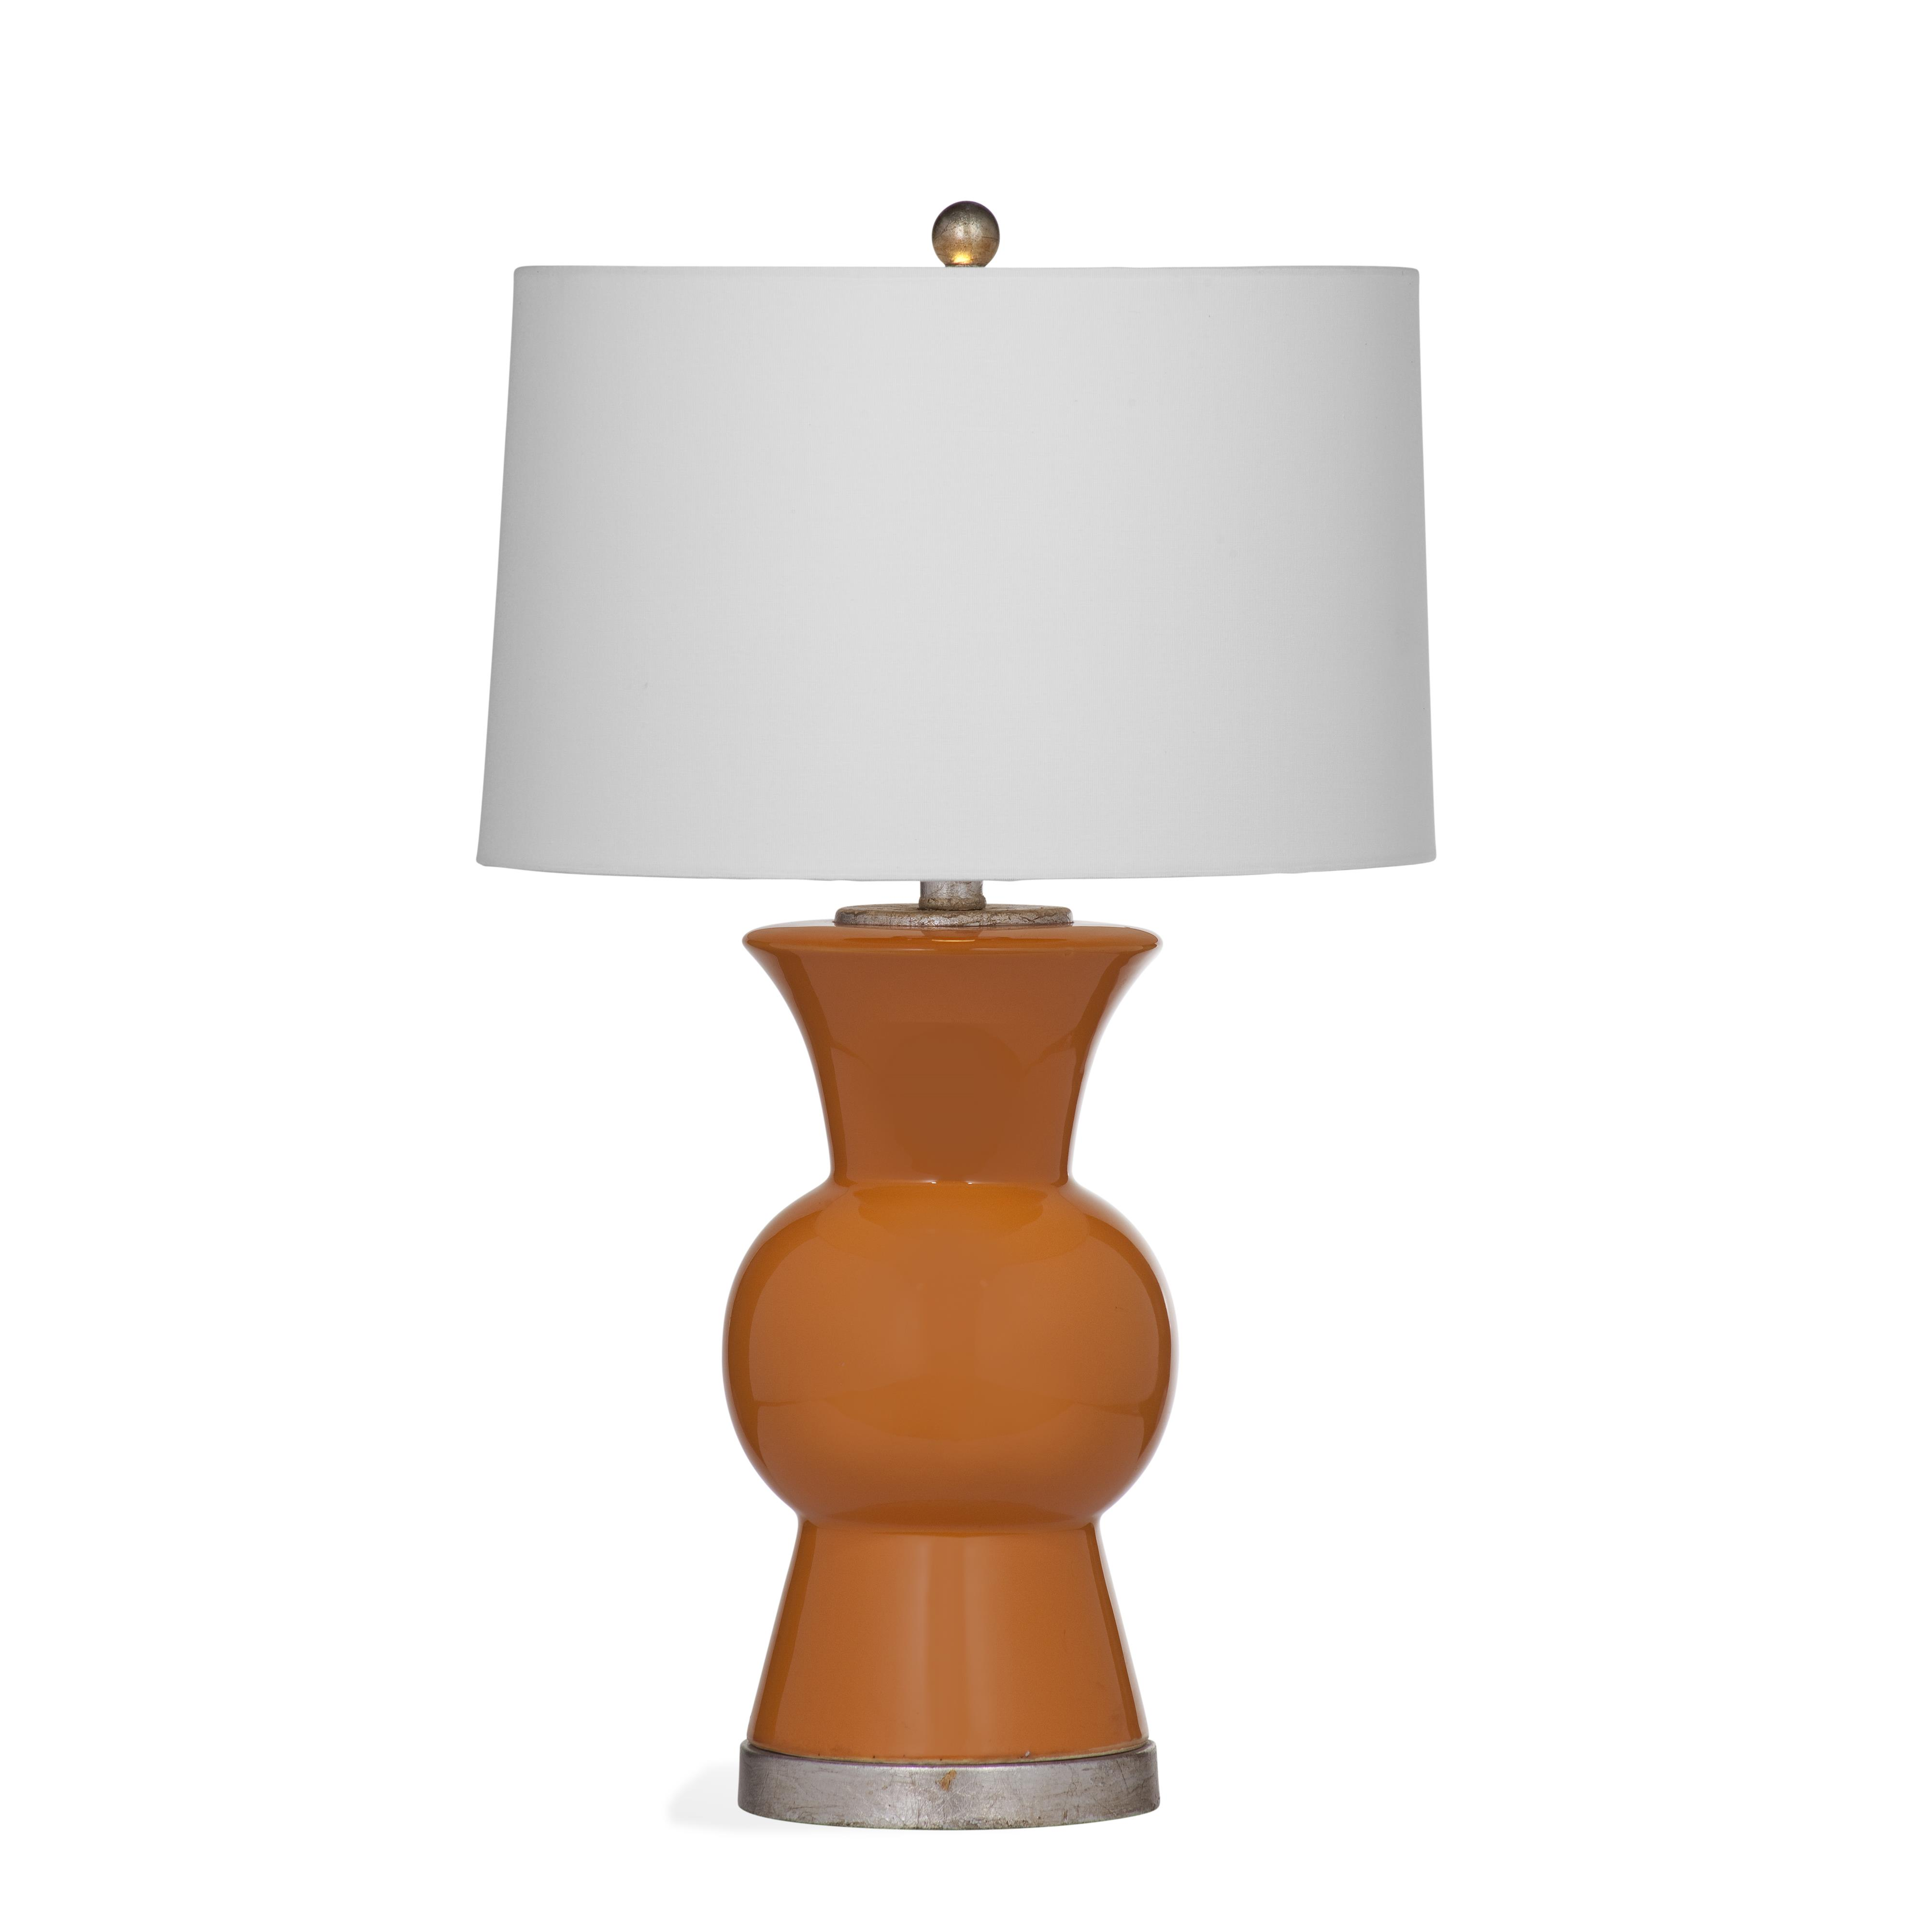 Old World Macon Table Lamp at Ruby Gordon Home